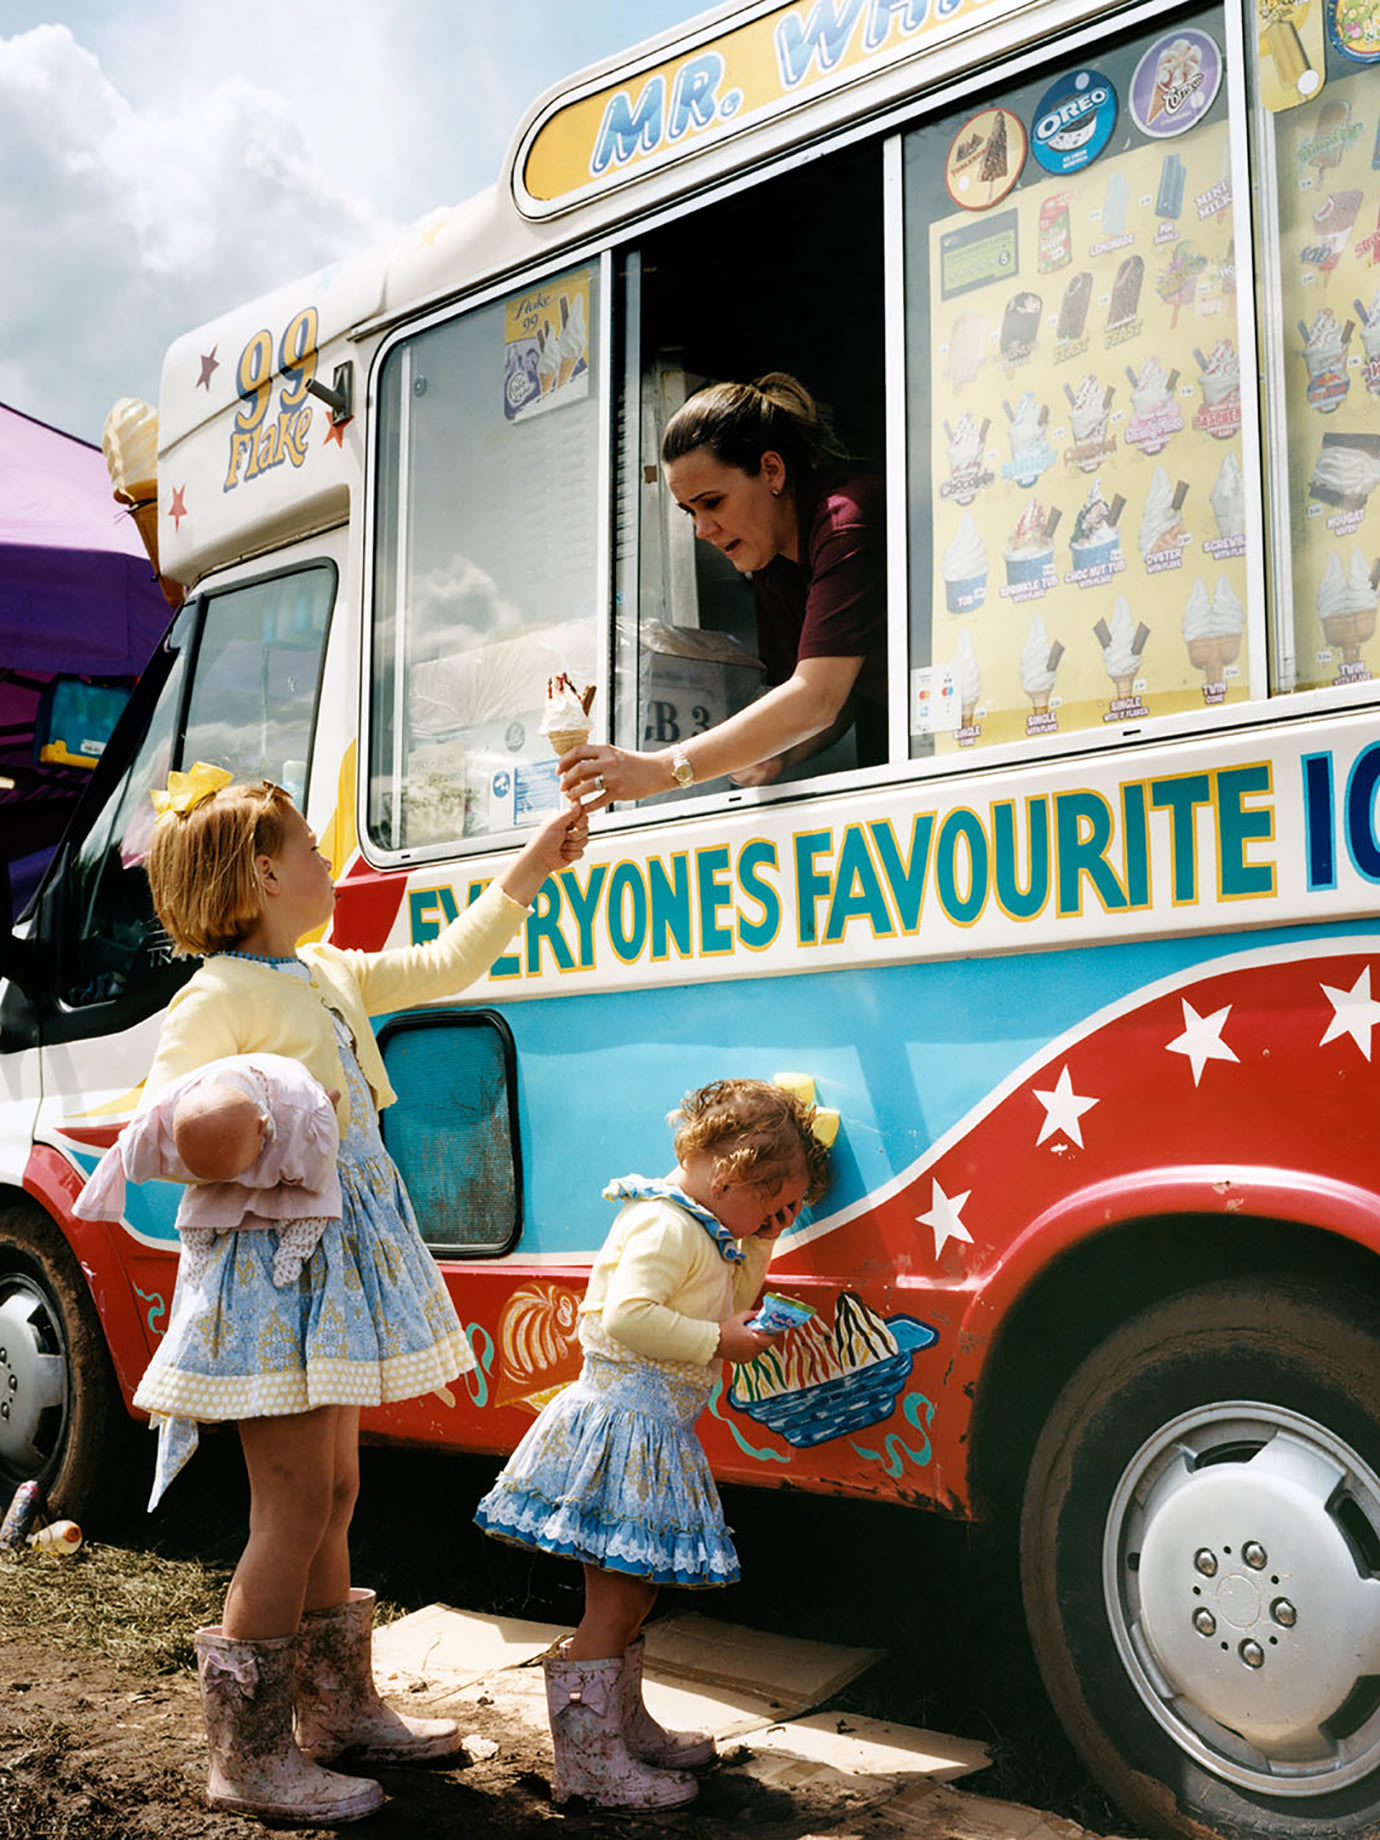 Two children being served ice cream from a van.